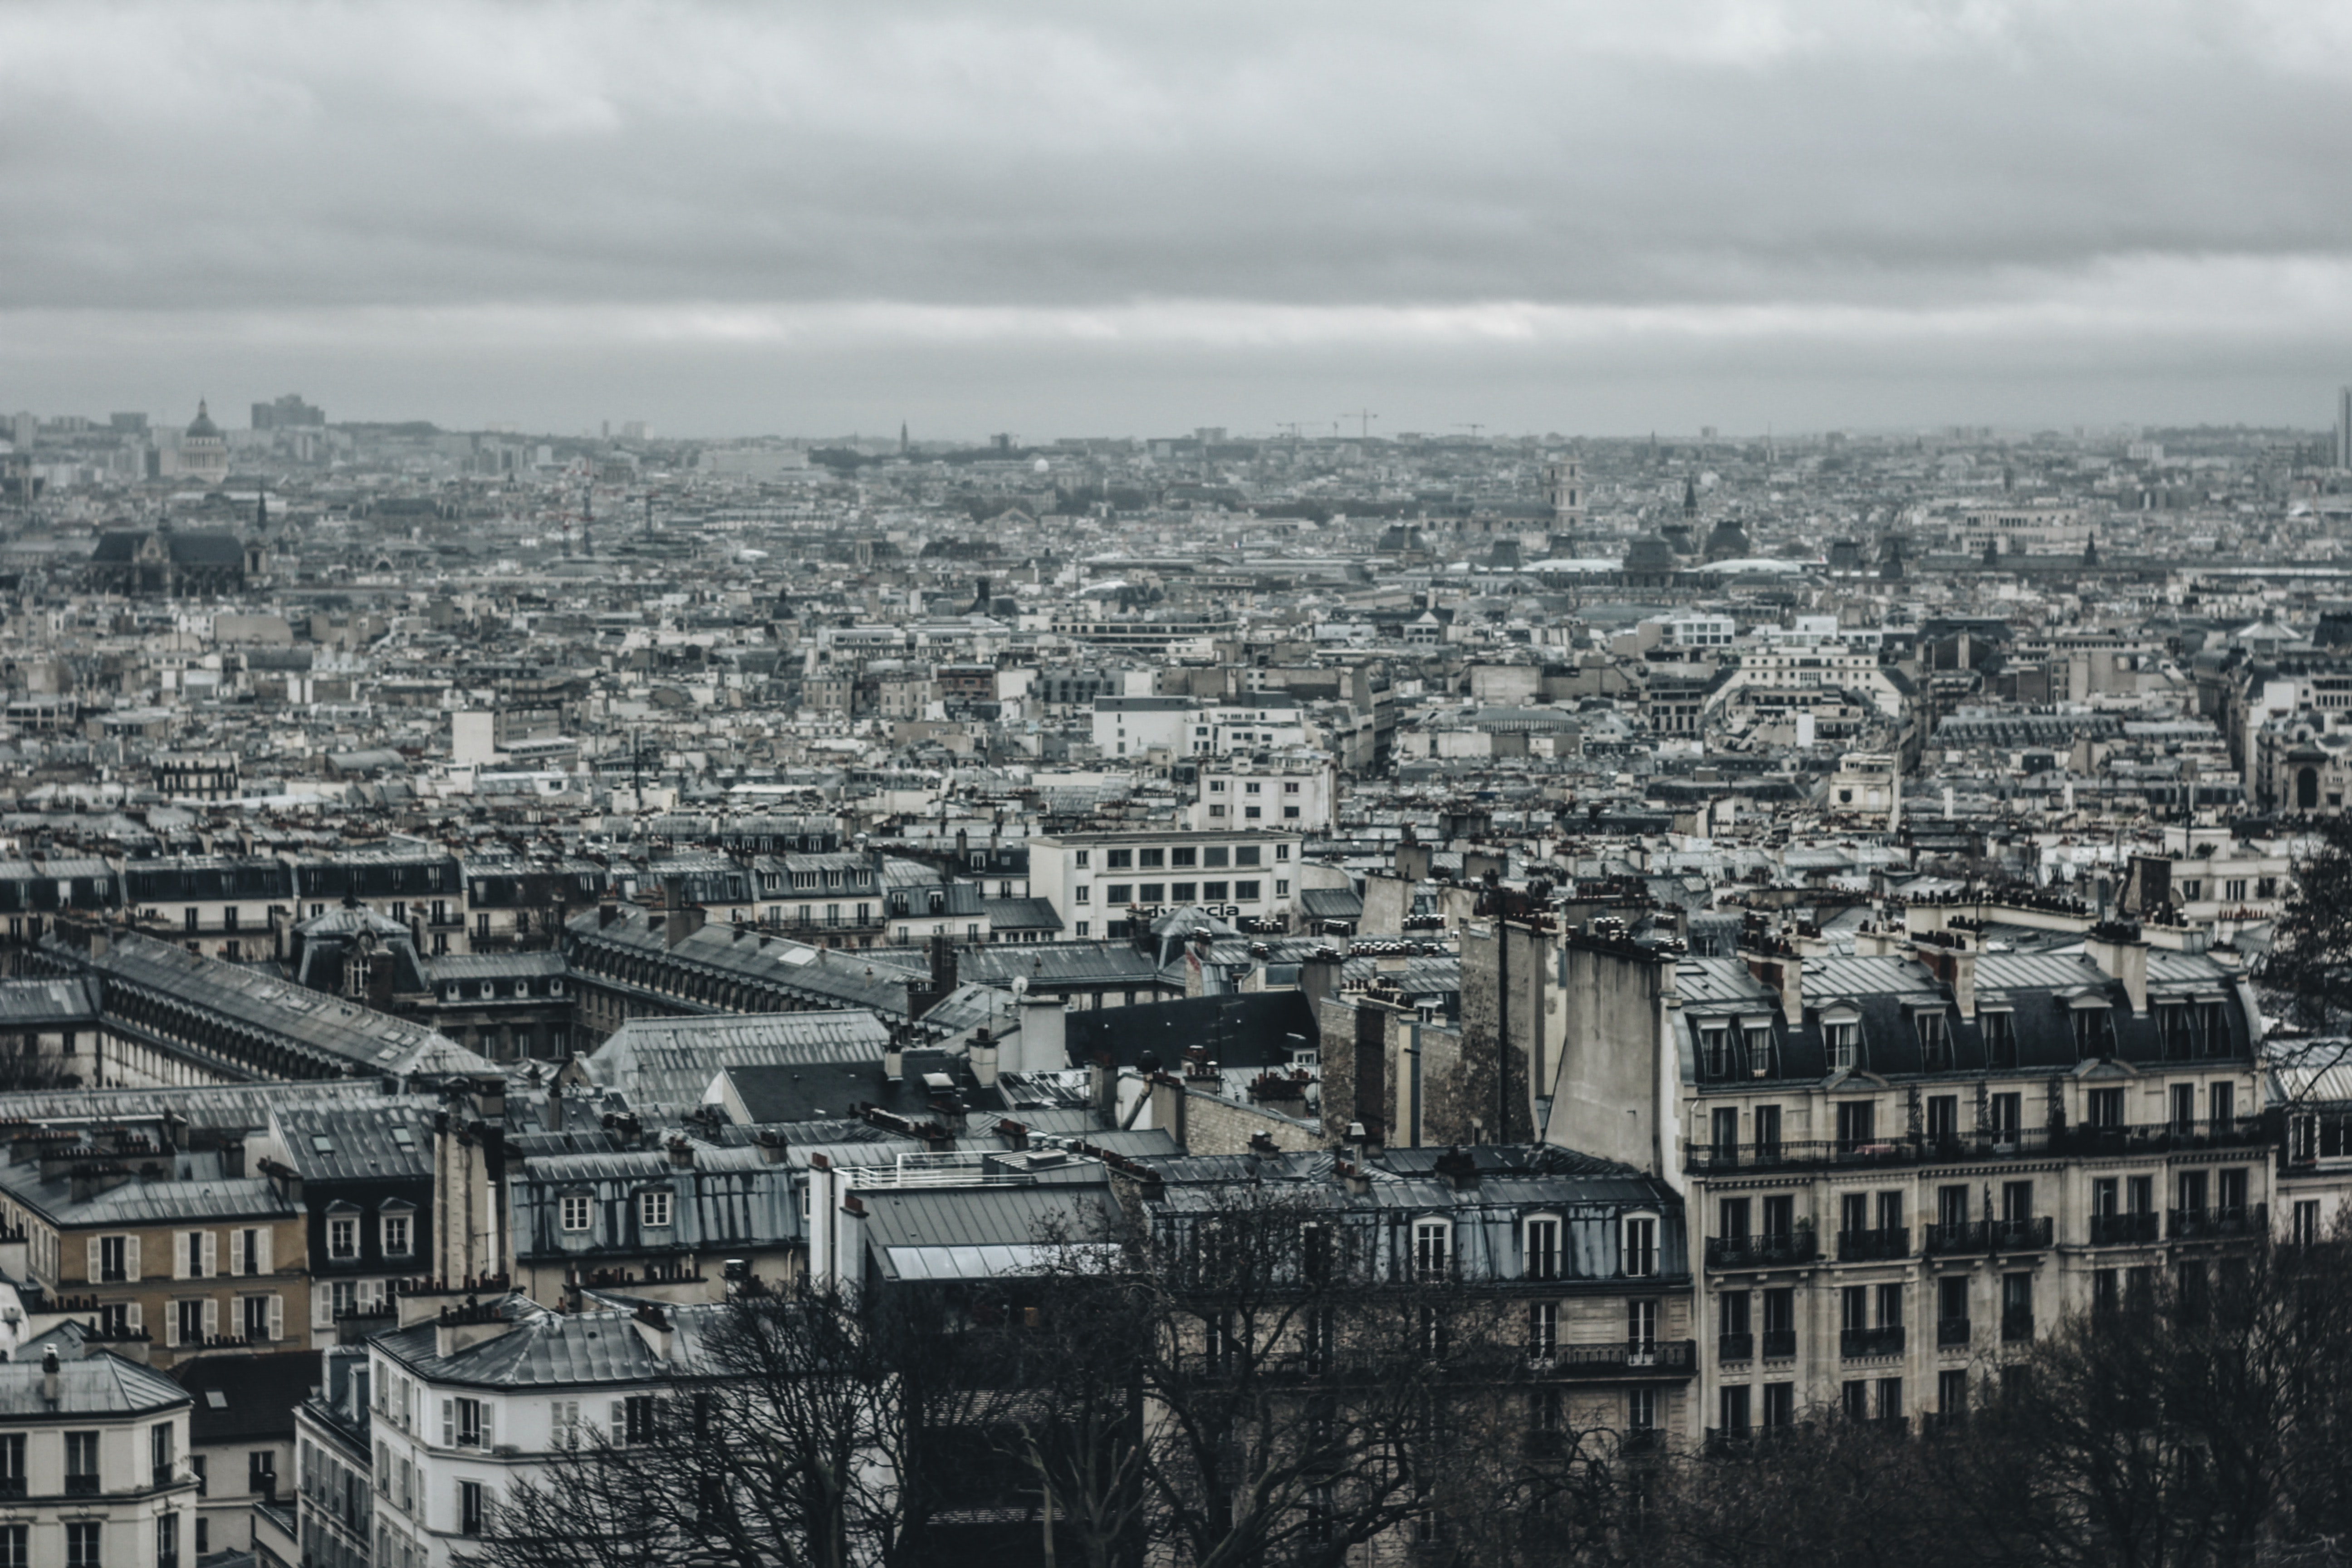 A desaturated shot of the Paris skyline on an overcast day